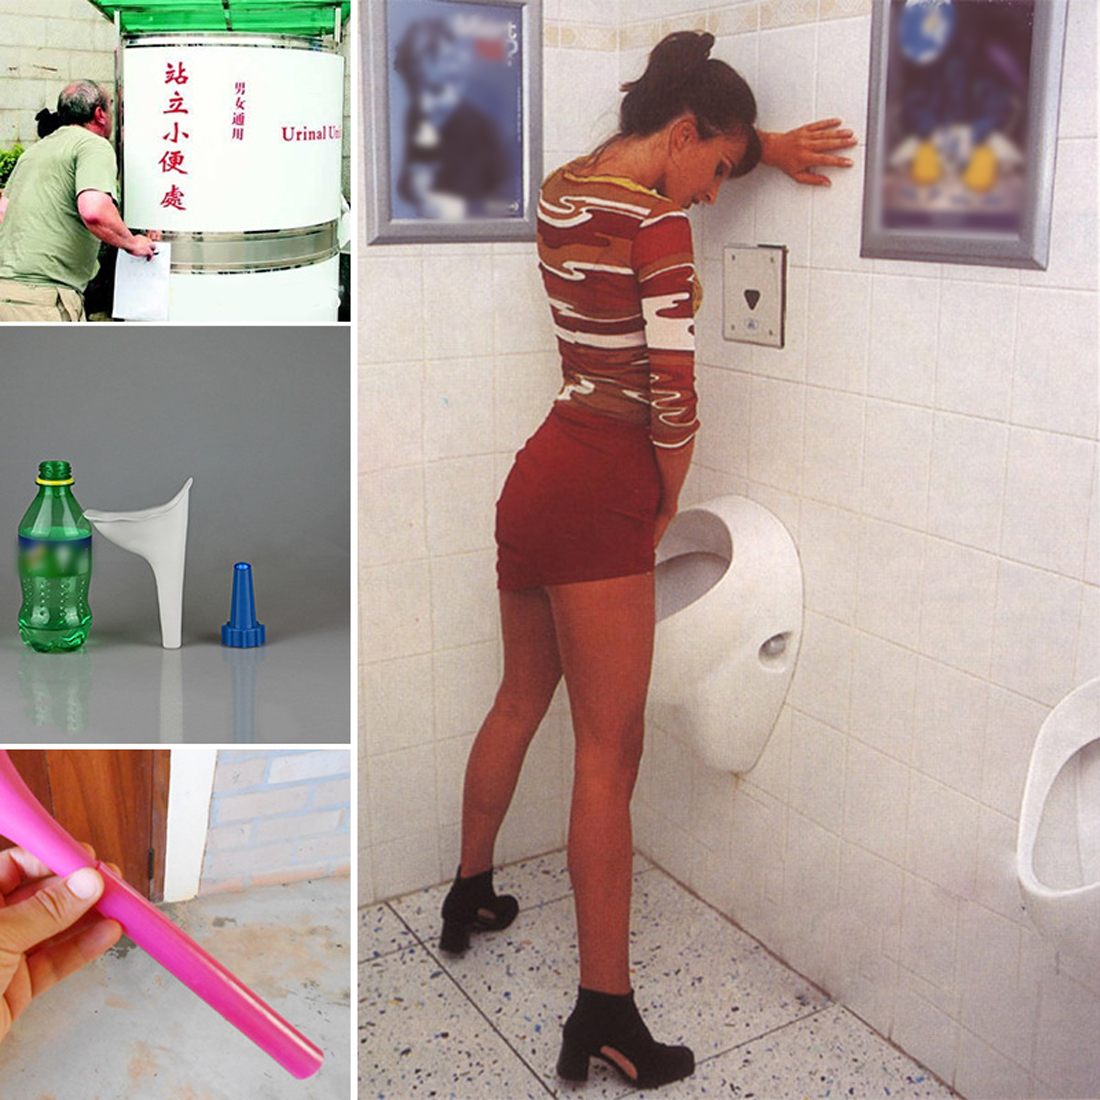 Female Travel Outdoor Urination Toilet Urine Device Funnel Female Standing Urinal For Women Lady Girl